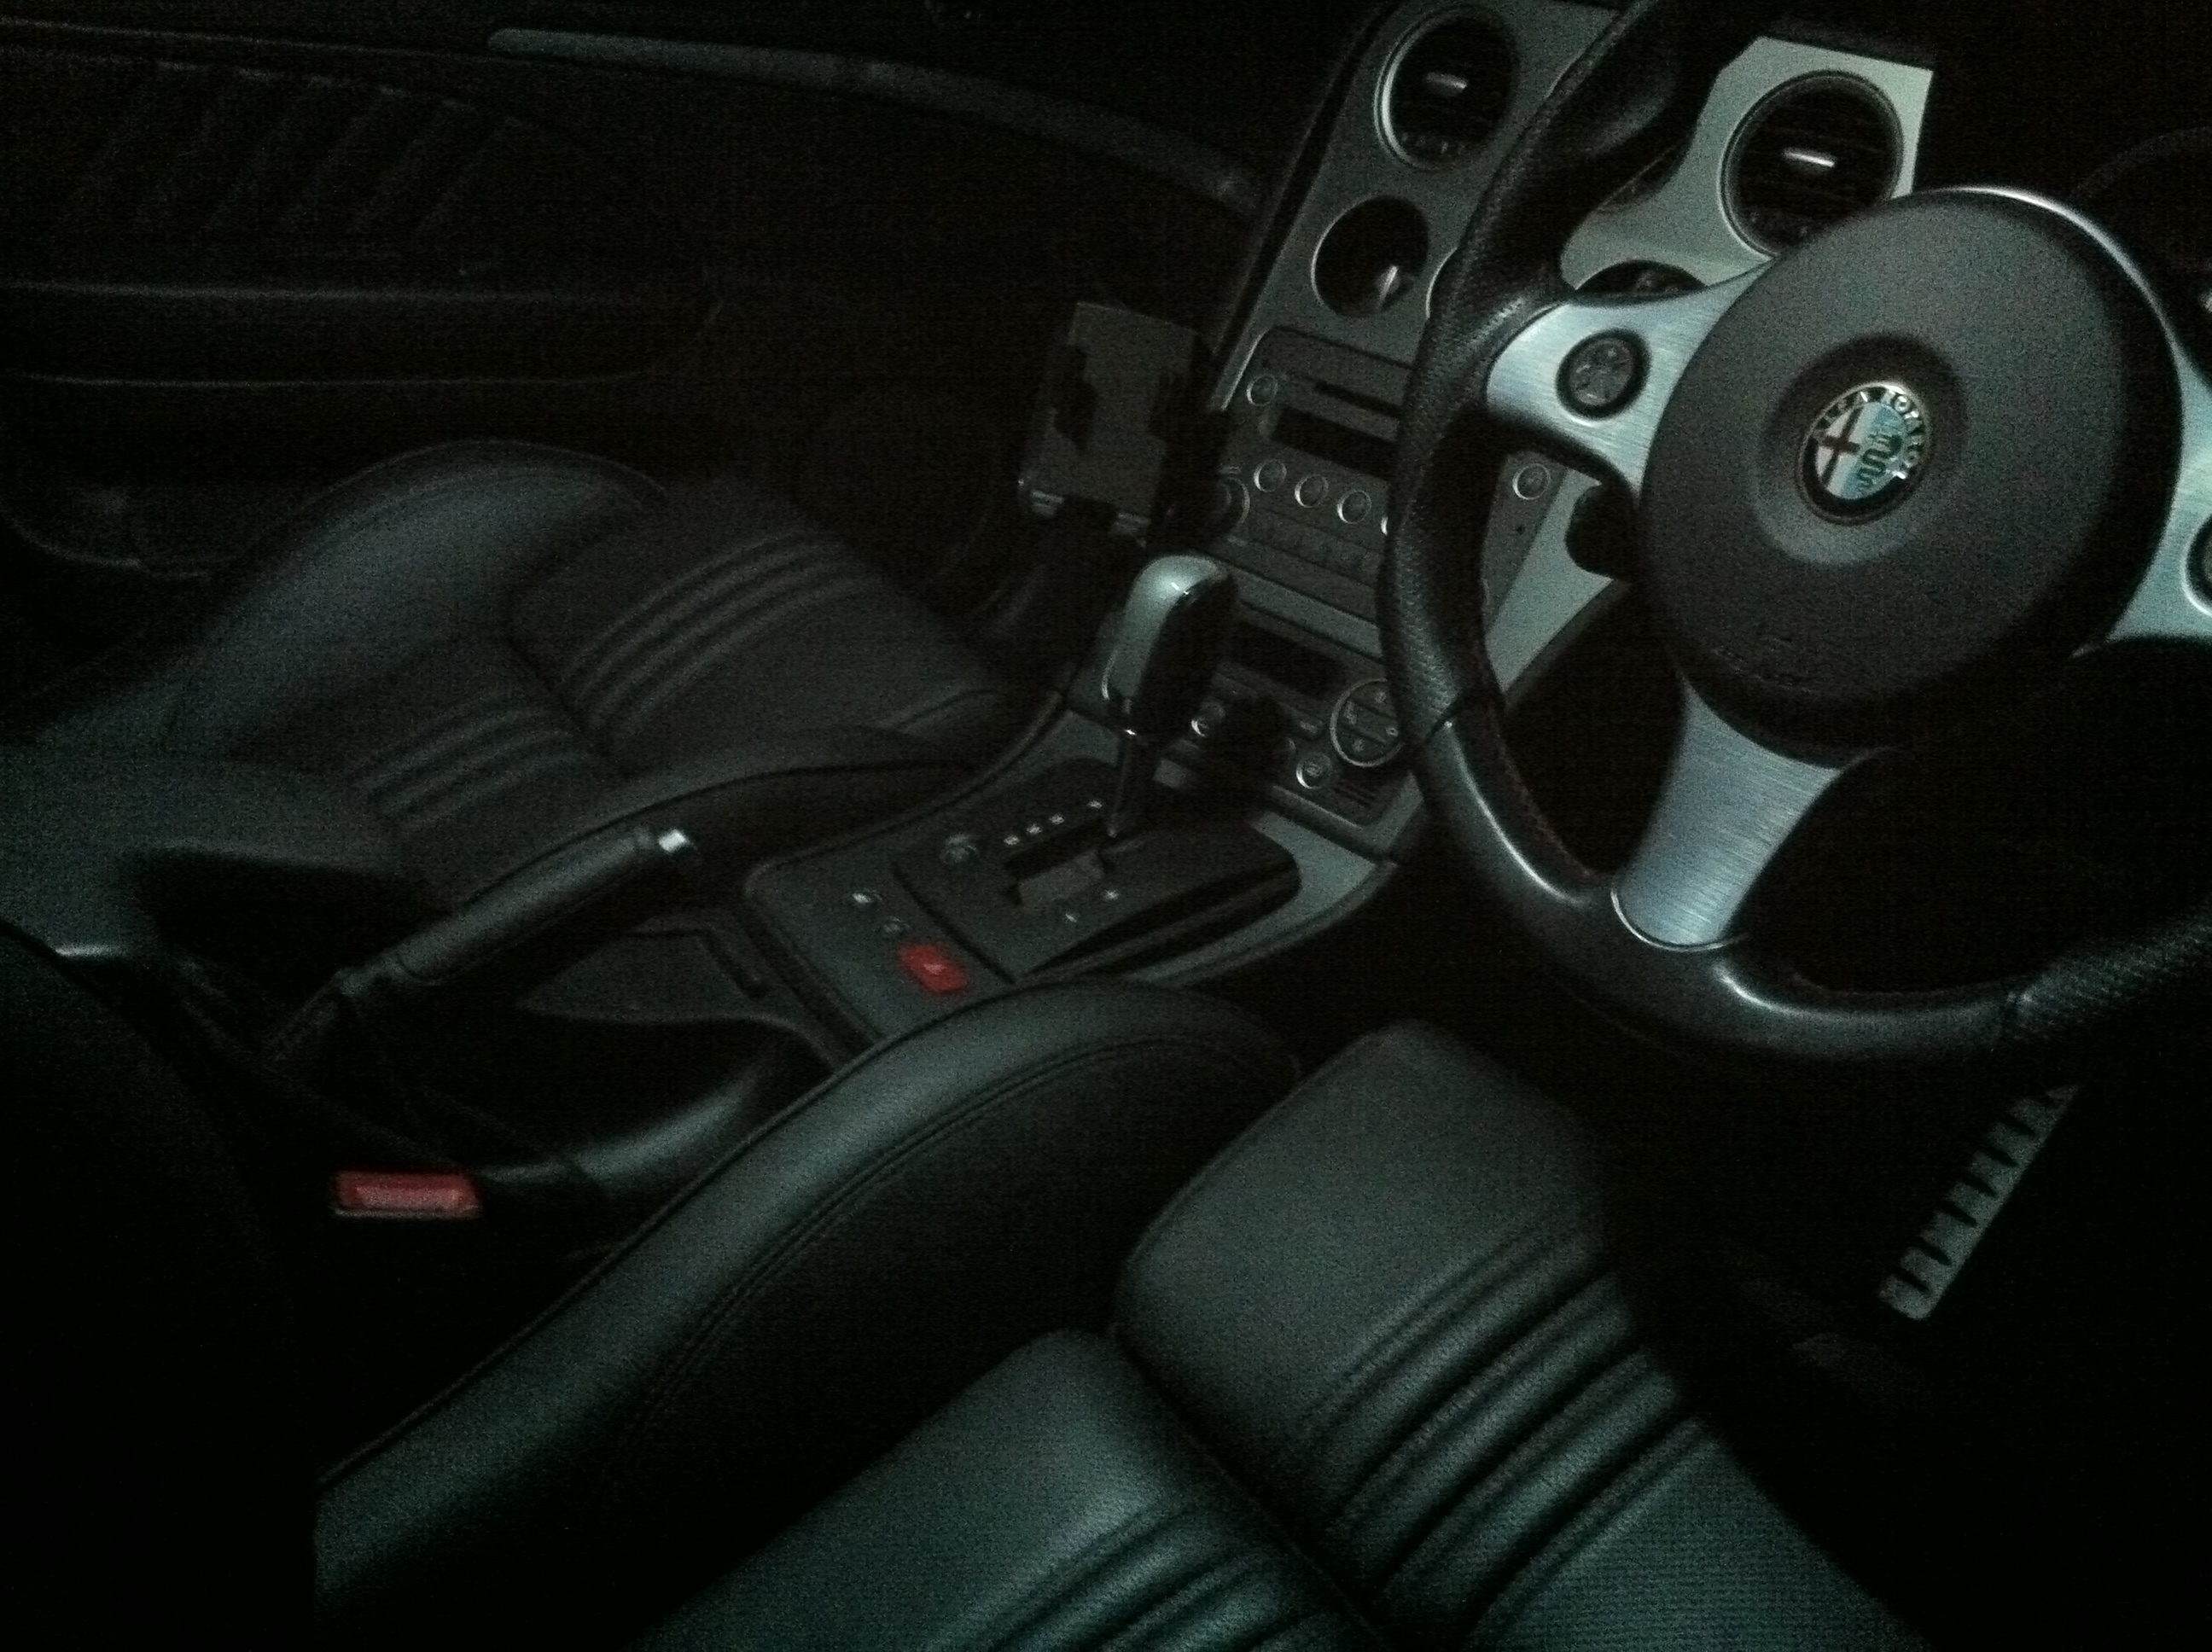 Alfa 159 Ti Full Led Conversion Interior Guide Jabawok Industries Wiring Look Like Together With Romeo On Can Light The Following Expanding Links Give You Specific Guides For Each Unit To Perform This Upgrade Yourself